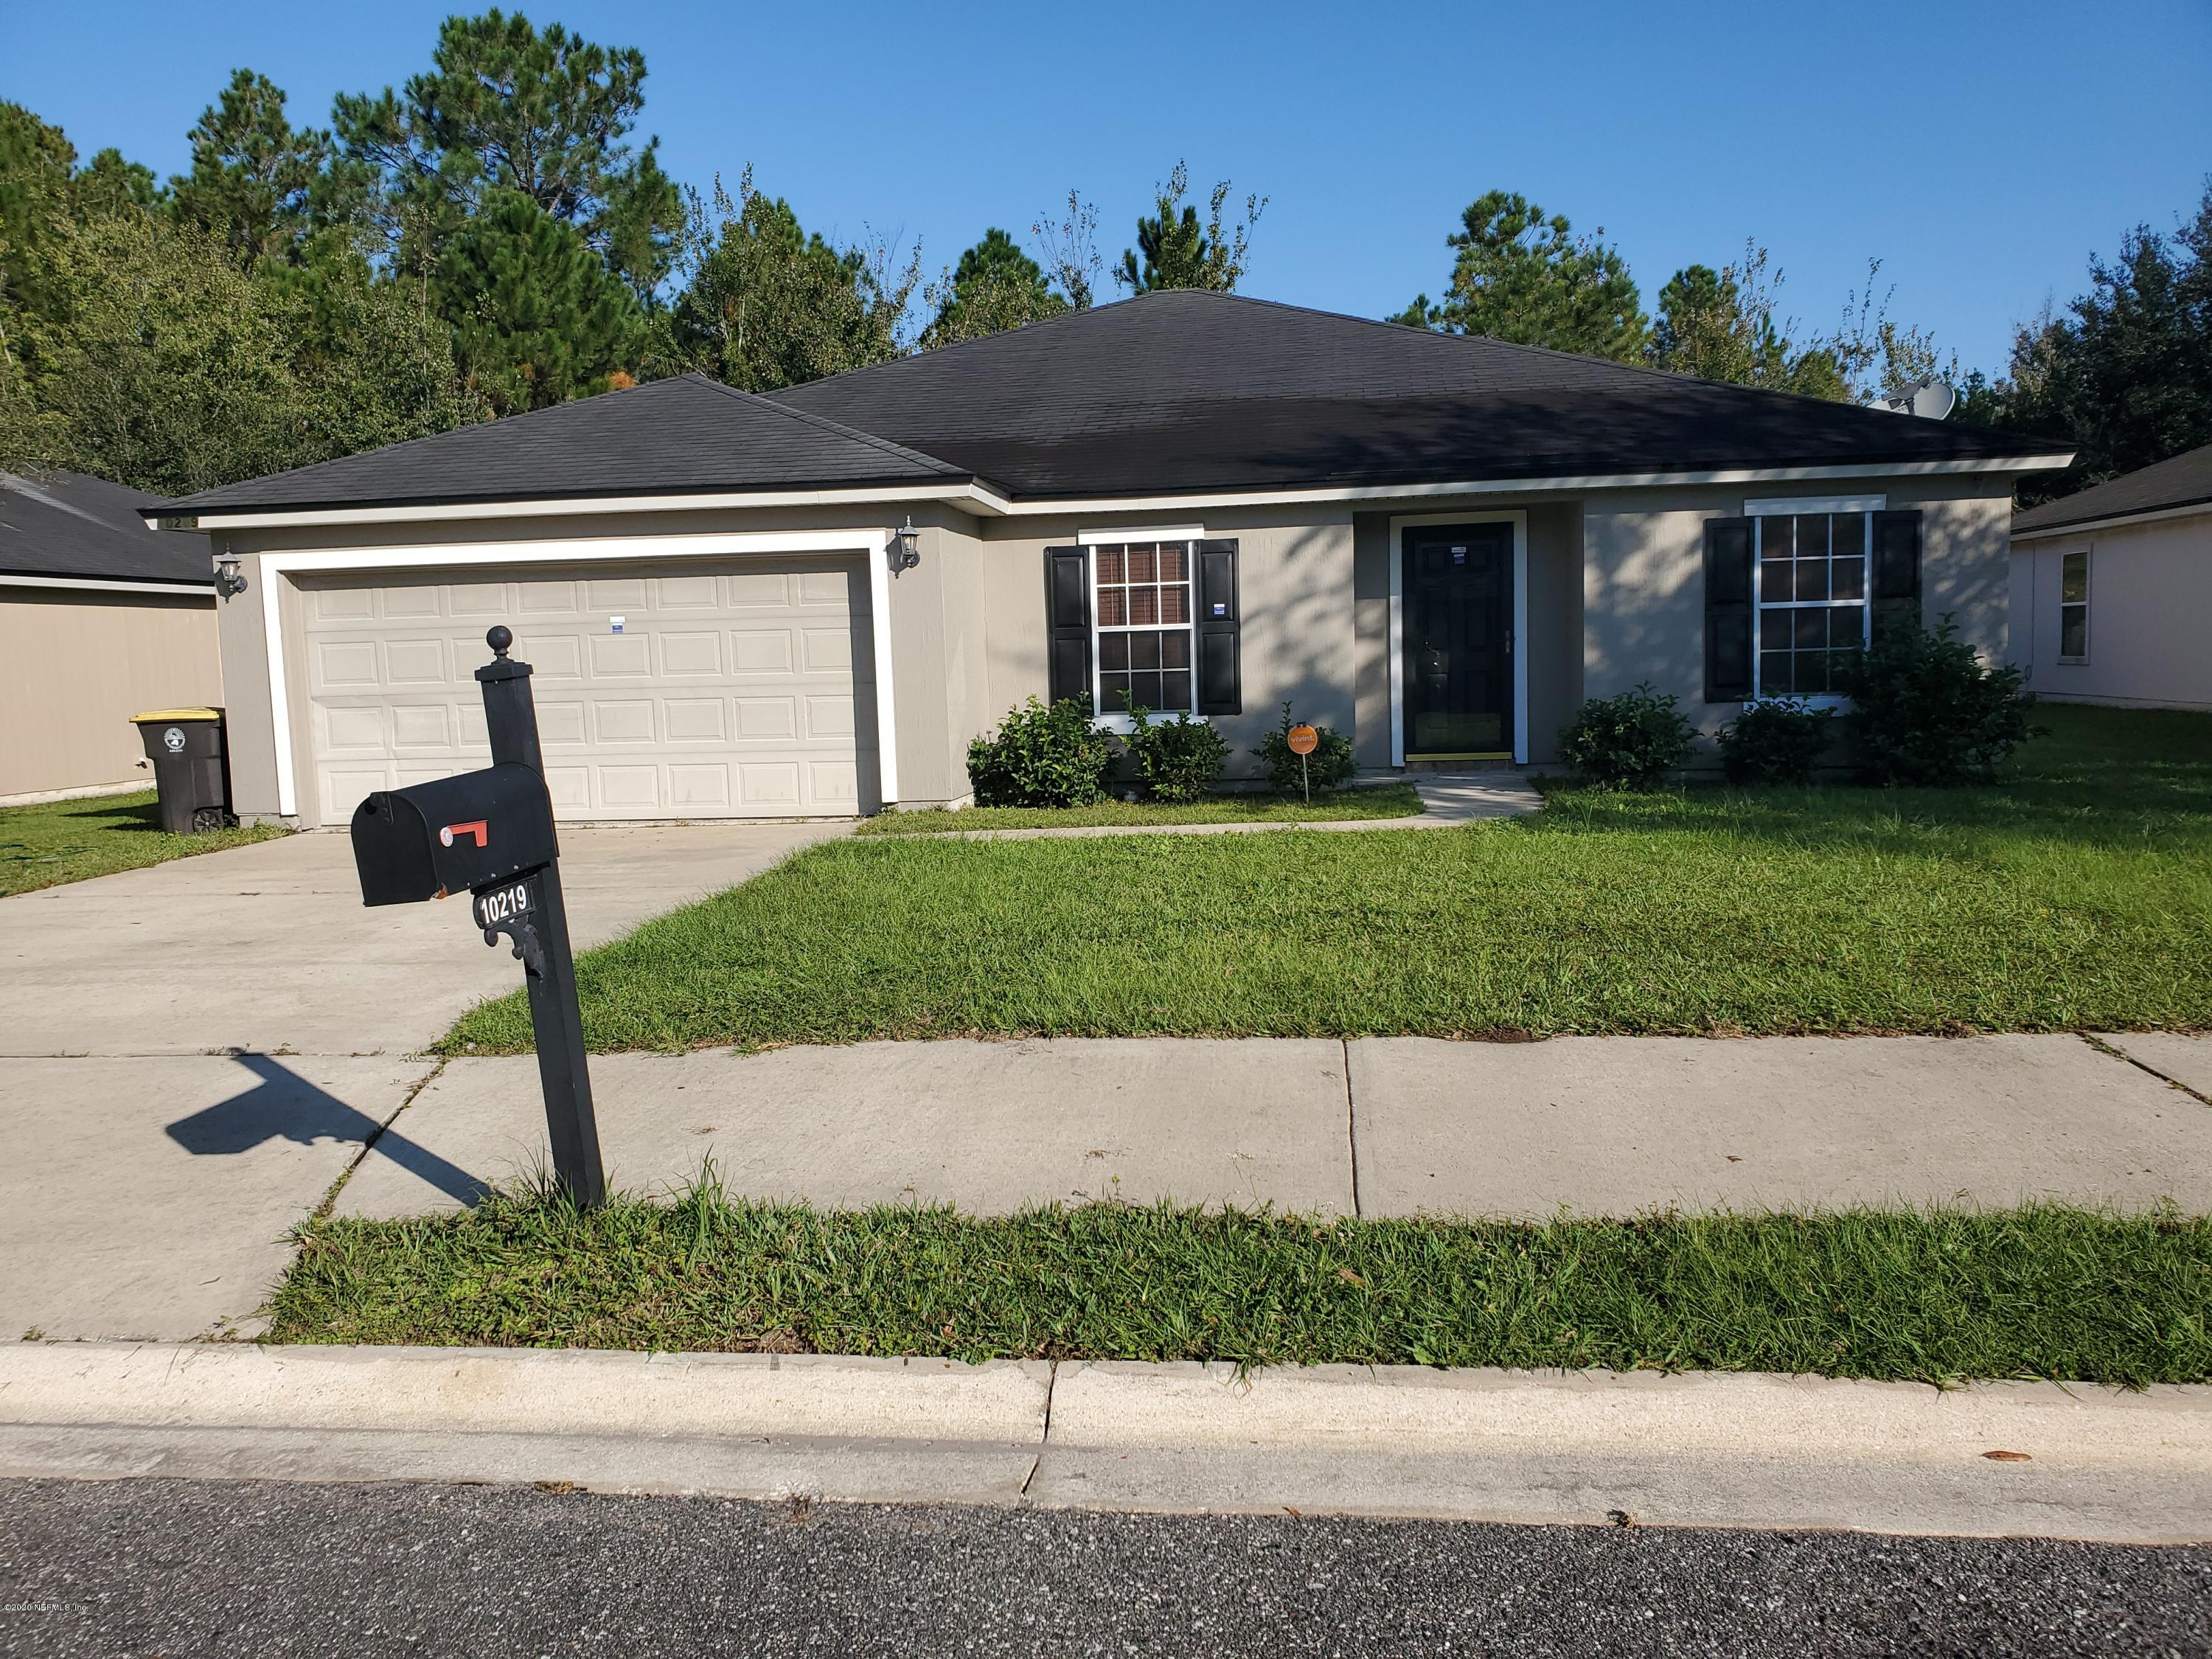 10219 NORMANDY COVE, JACKSONVILLE, FLORIDA 32221, 3 Bedrooms Bedrooms, ,2 BathroomsBathrooms,Residential,For sale,NORMANDY COVE,1083380